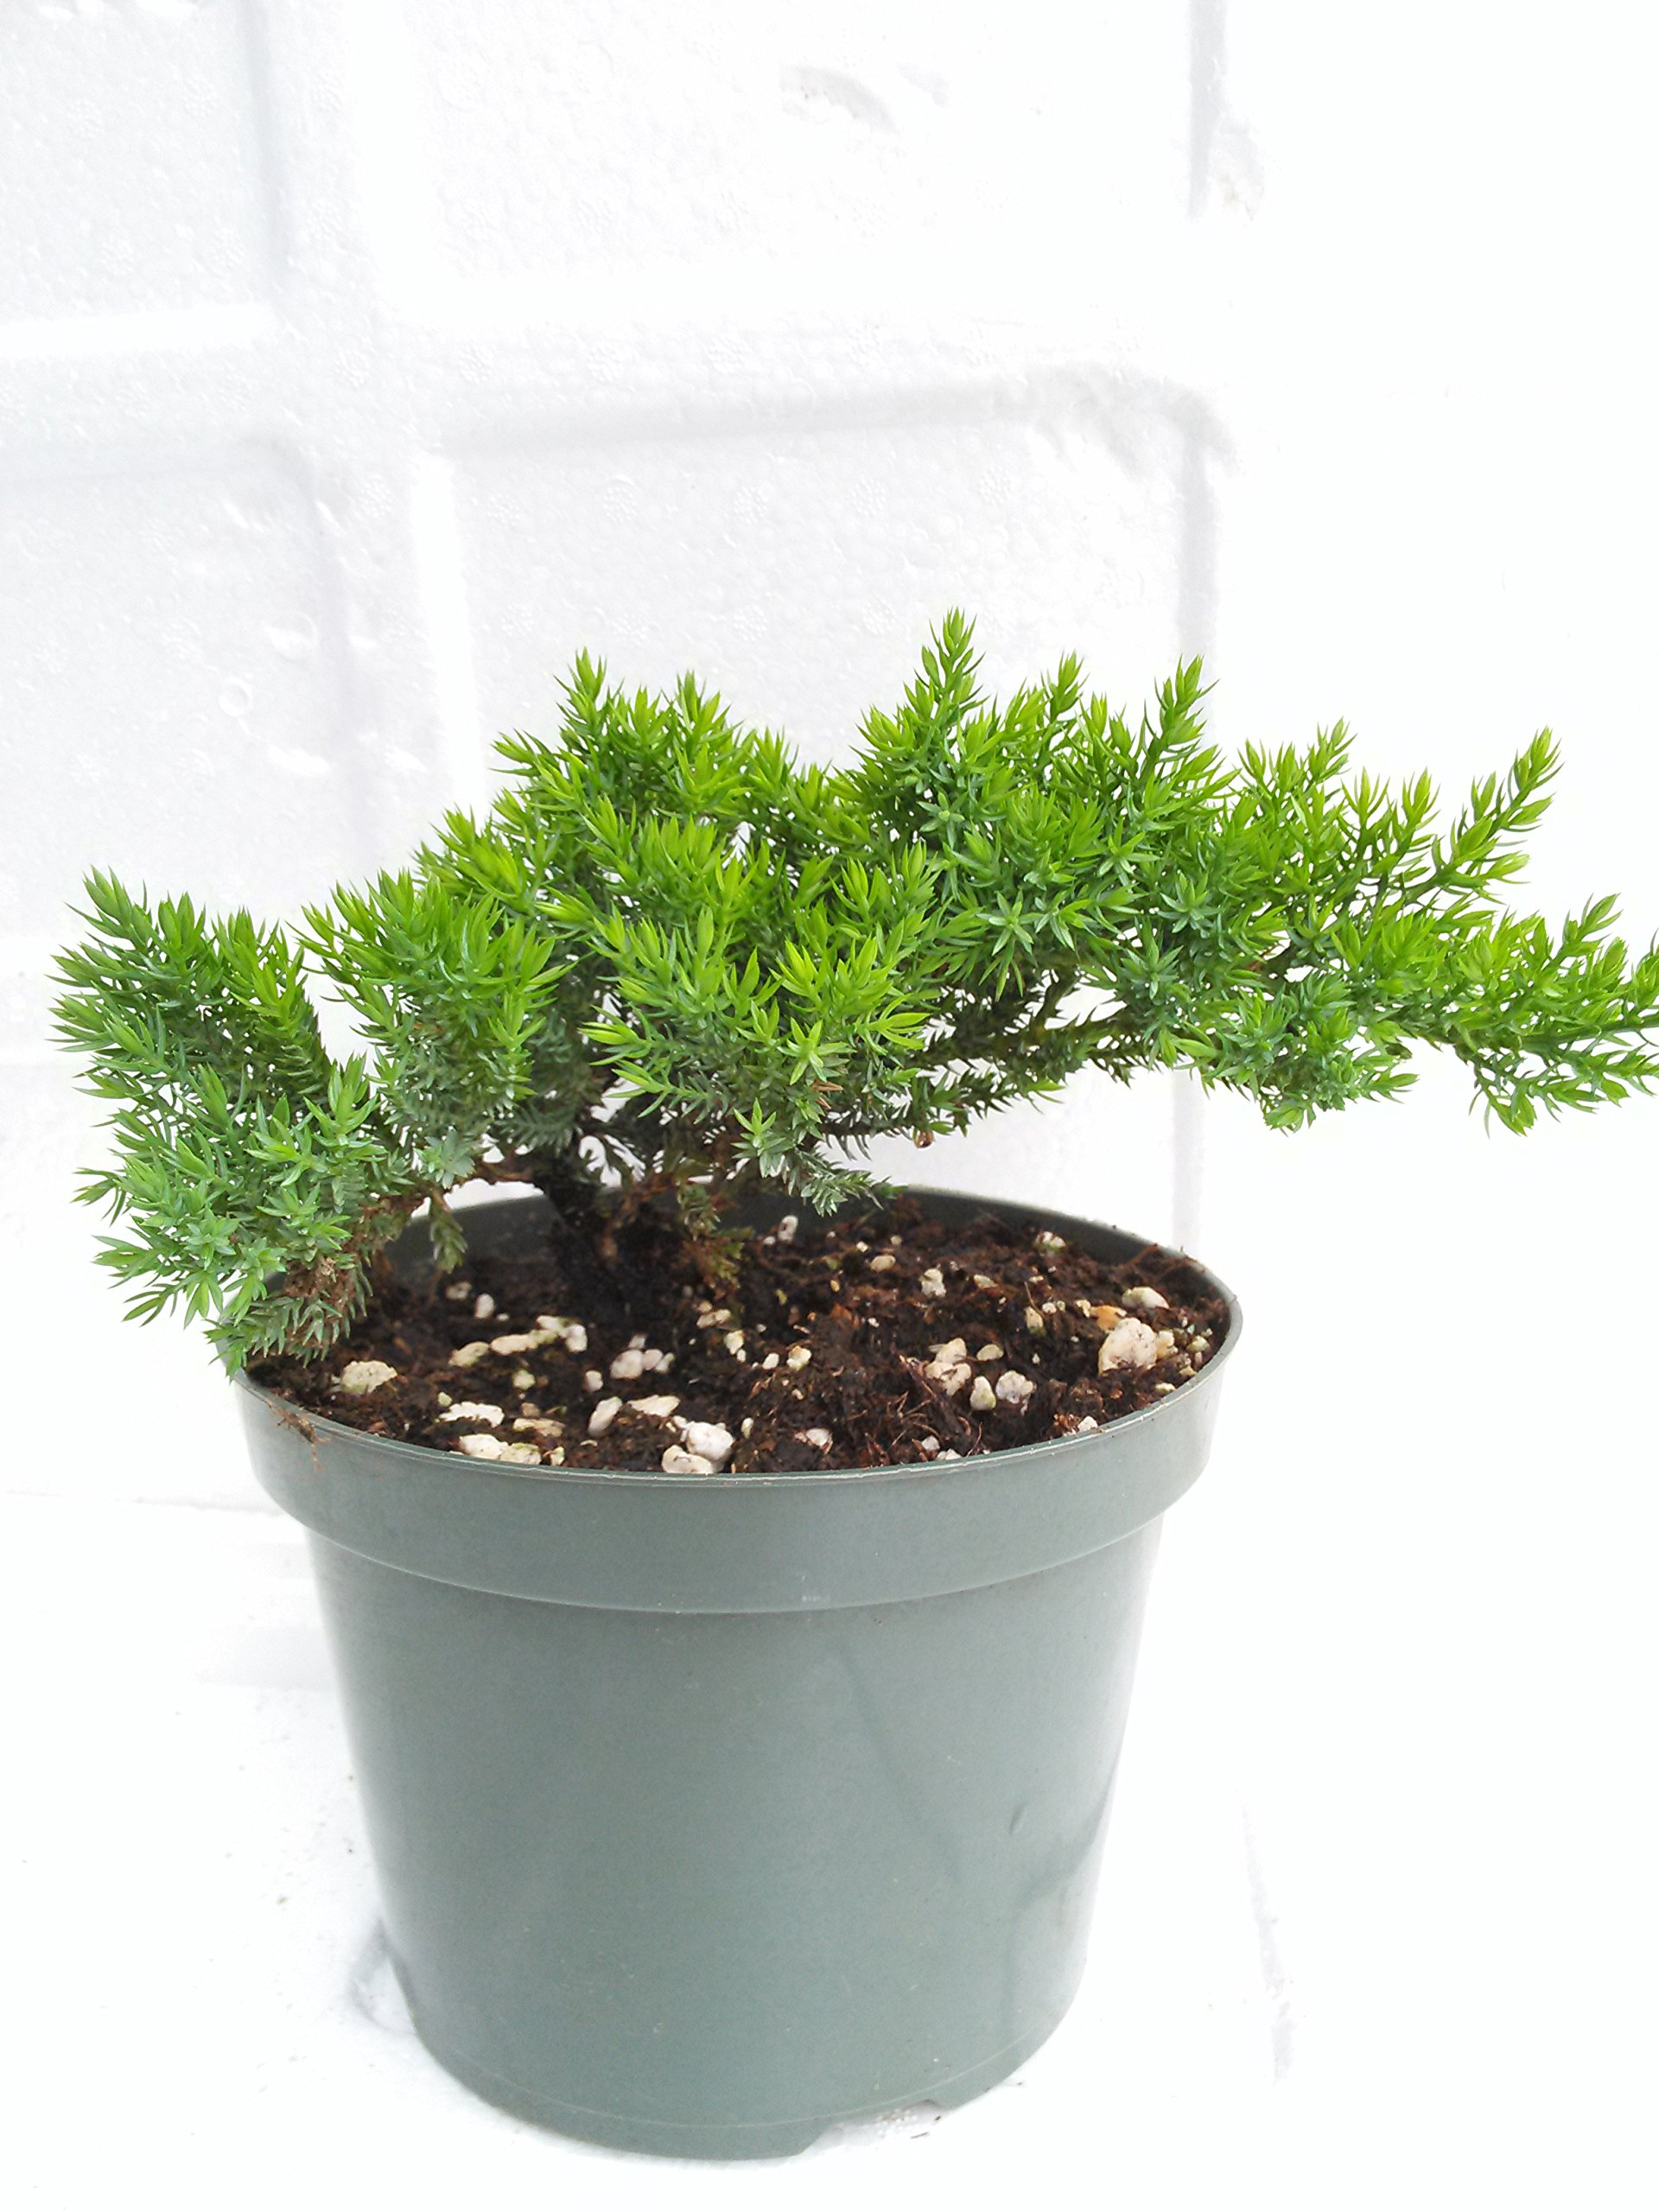 Tree Bonsai Juniper Garden 6'' Pot with Bonsai Fertilizer Slow Release unique from Jmbamboo by JM BAMBOO